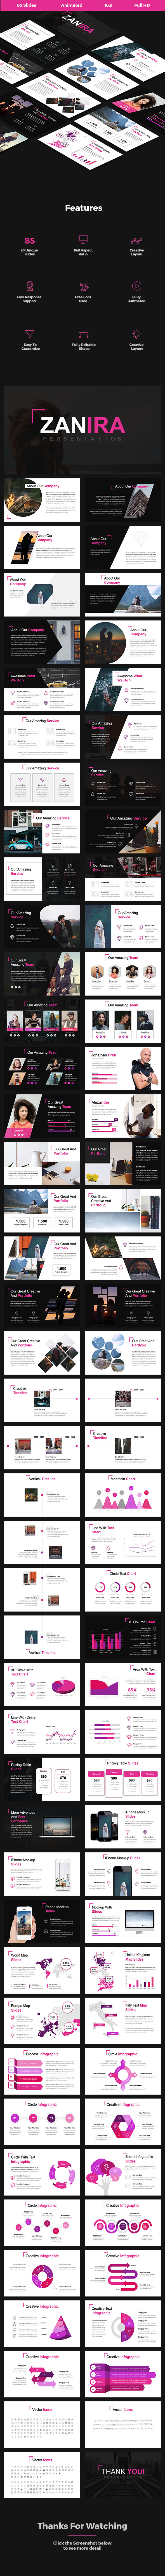 Zanira - Creative Keynote Template - Creative Keynote Templates